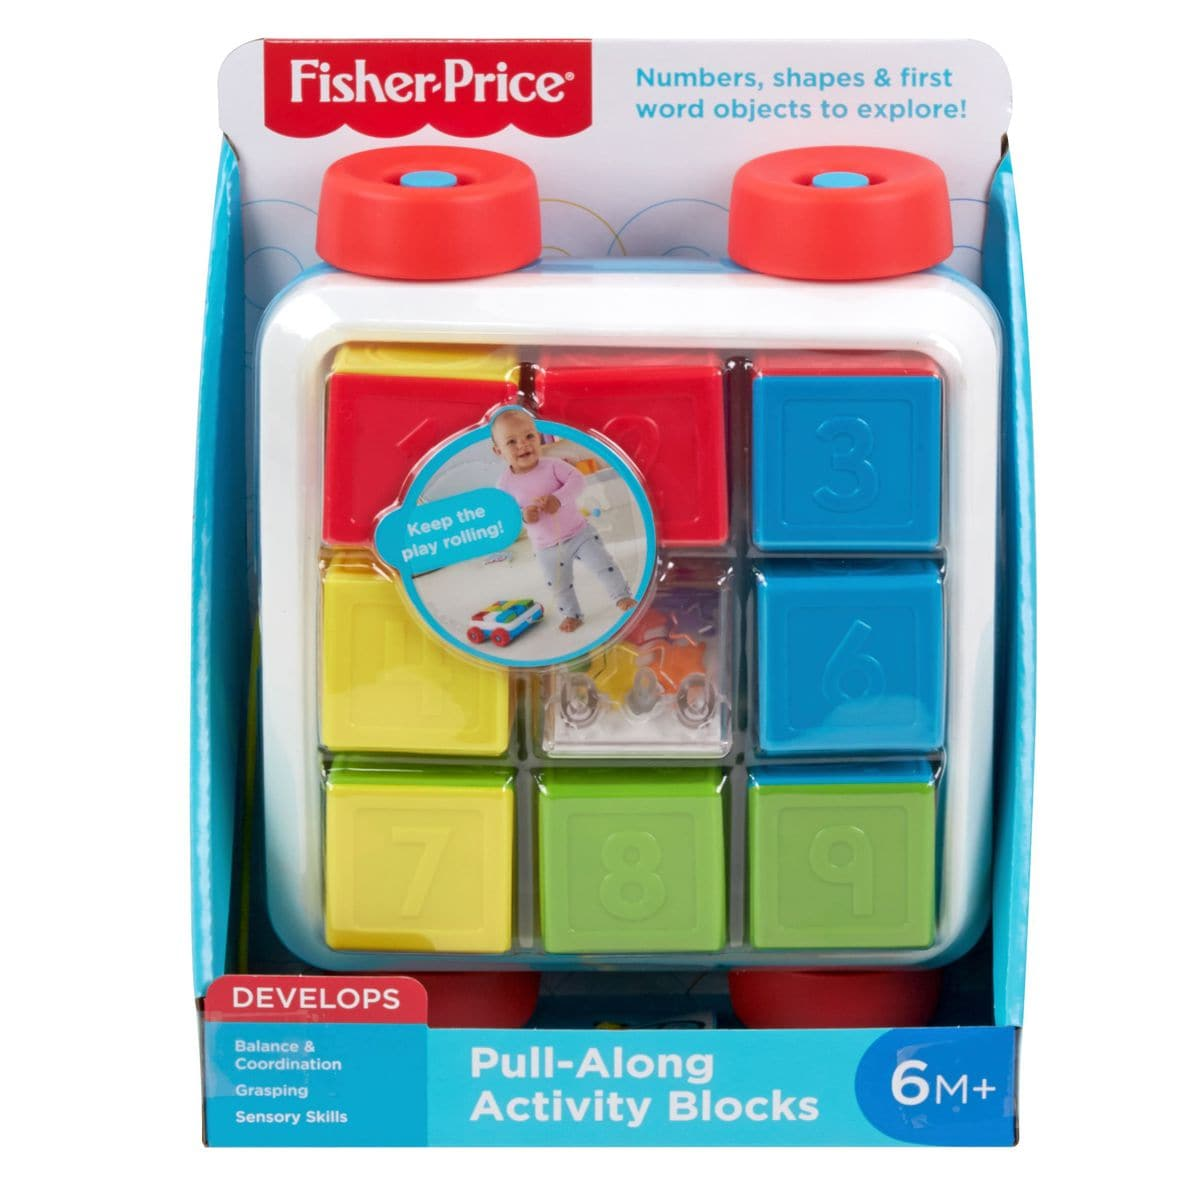 Fisher-Price Bloc-Venture